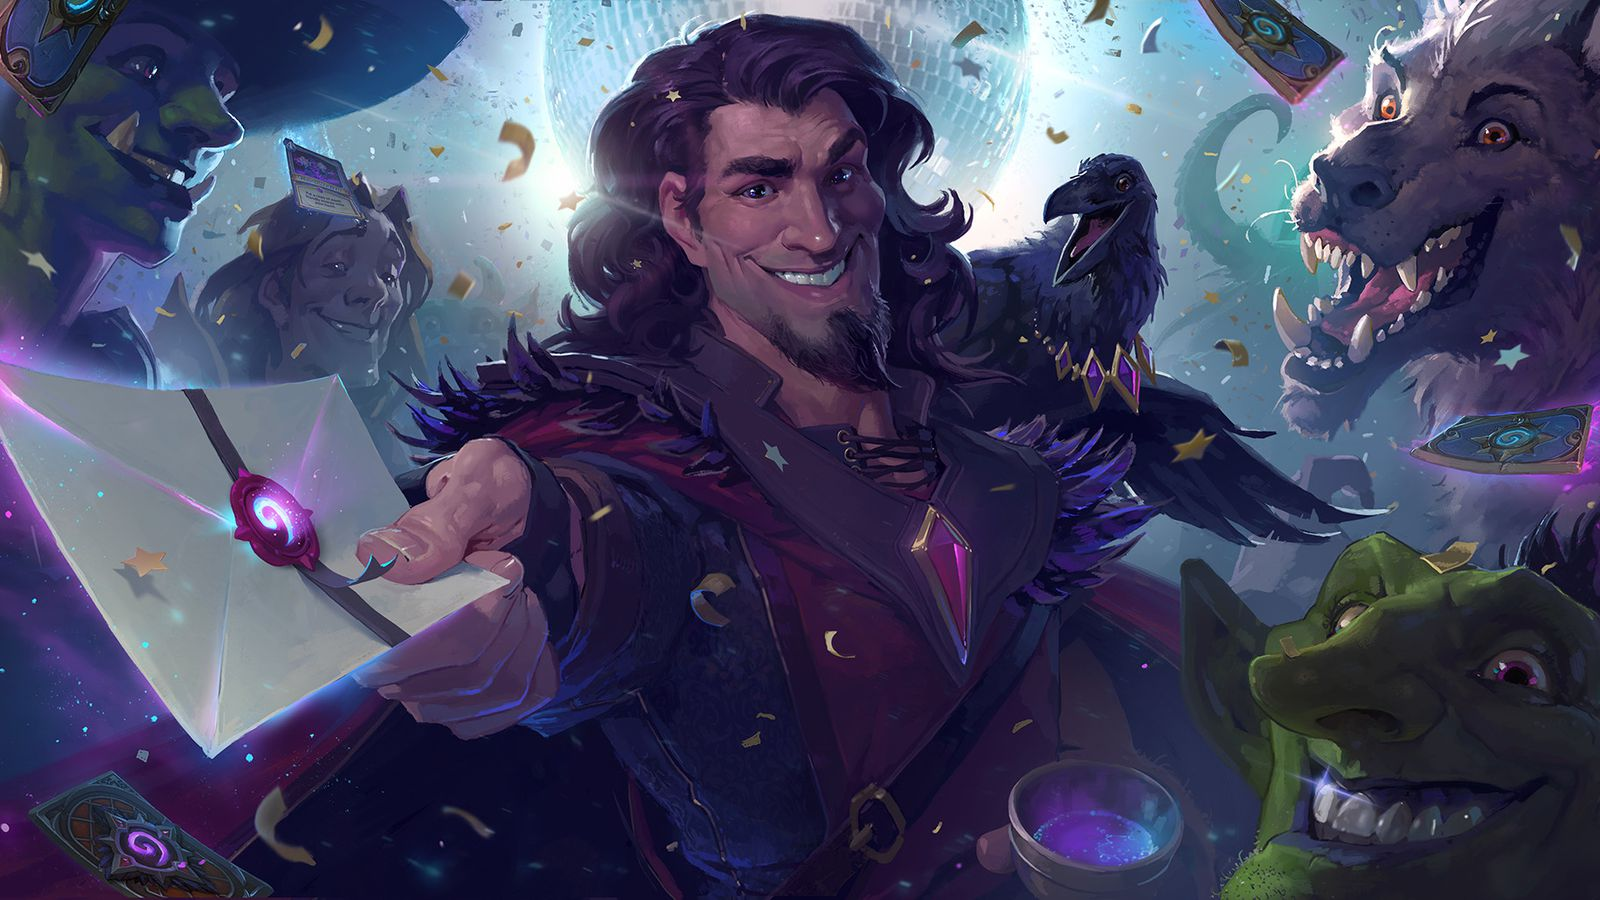 One Night in Karazhan is Hearthstone's next adventure, adds 45 new cards